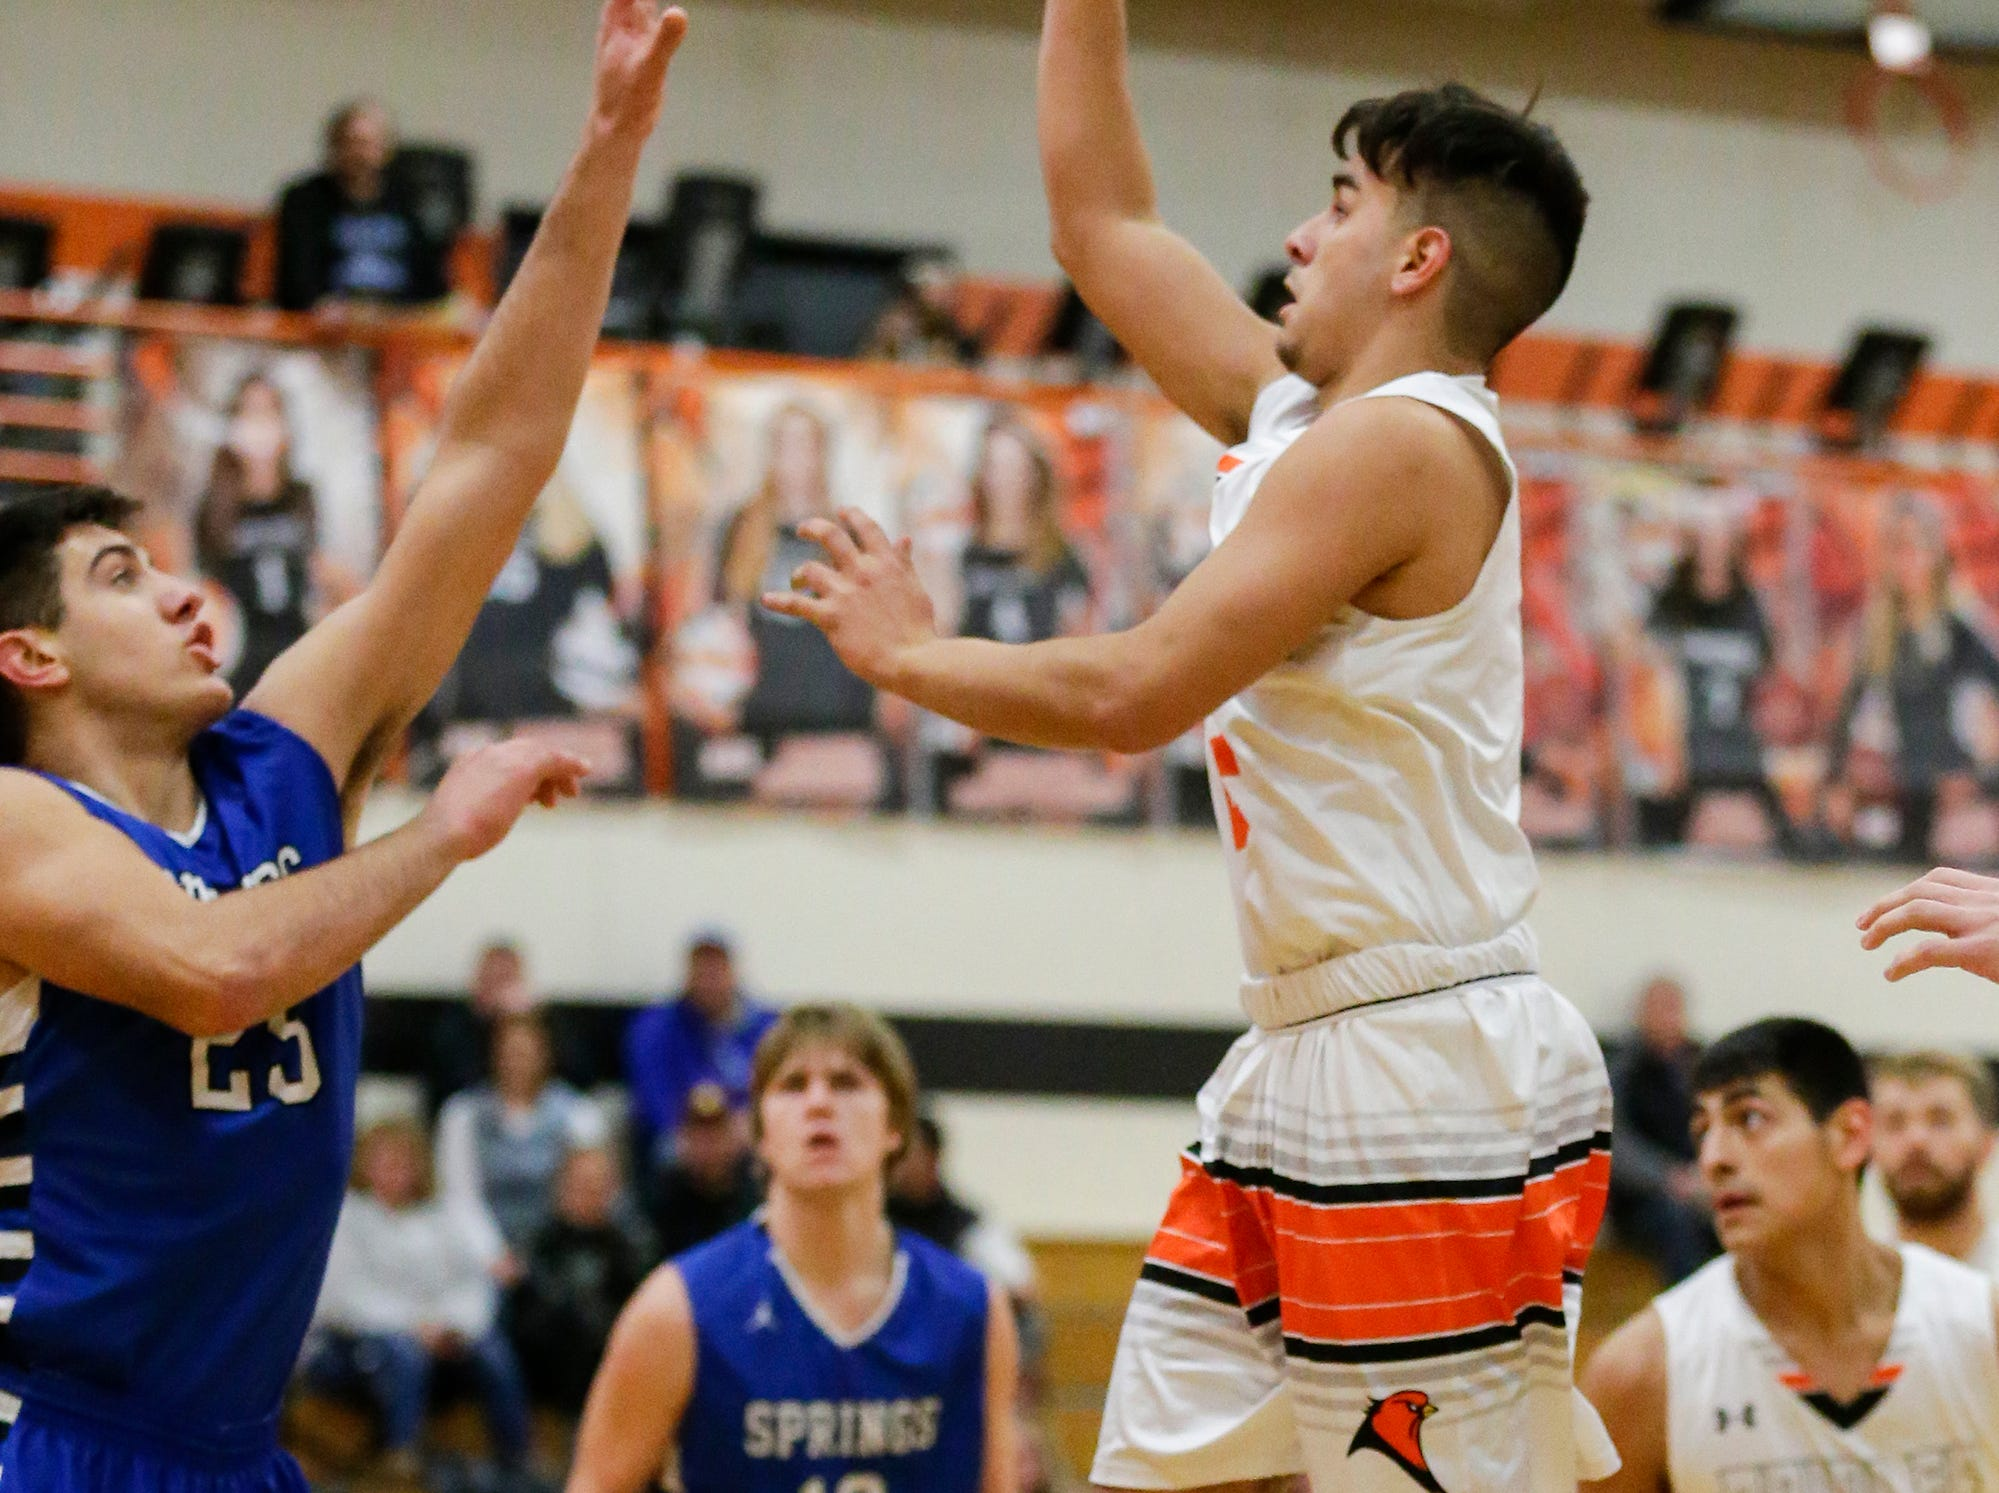 North Fond du Lac High School boys basketball's Matthew Holbus goes up for a basket against St. Mary's Springs Academy's Justin Ditter during their game Friday, December 7, 2018 in North Fond du Lac, Wisconsin. Doug Raflik/USA TODAY NETWORK-Wisconsin